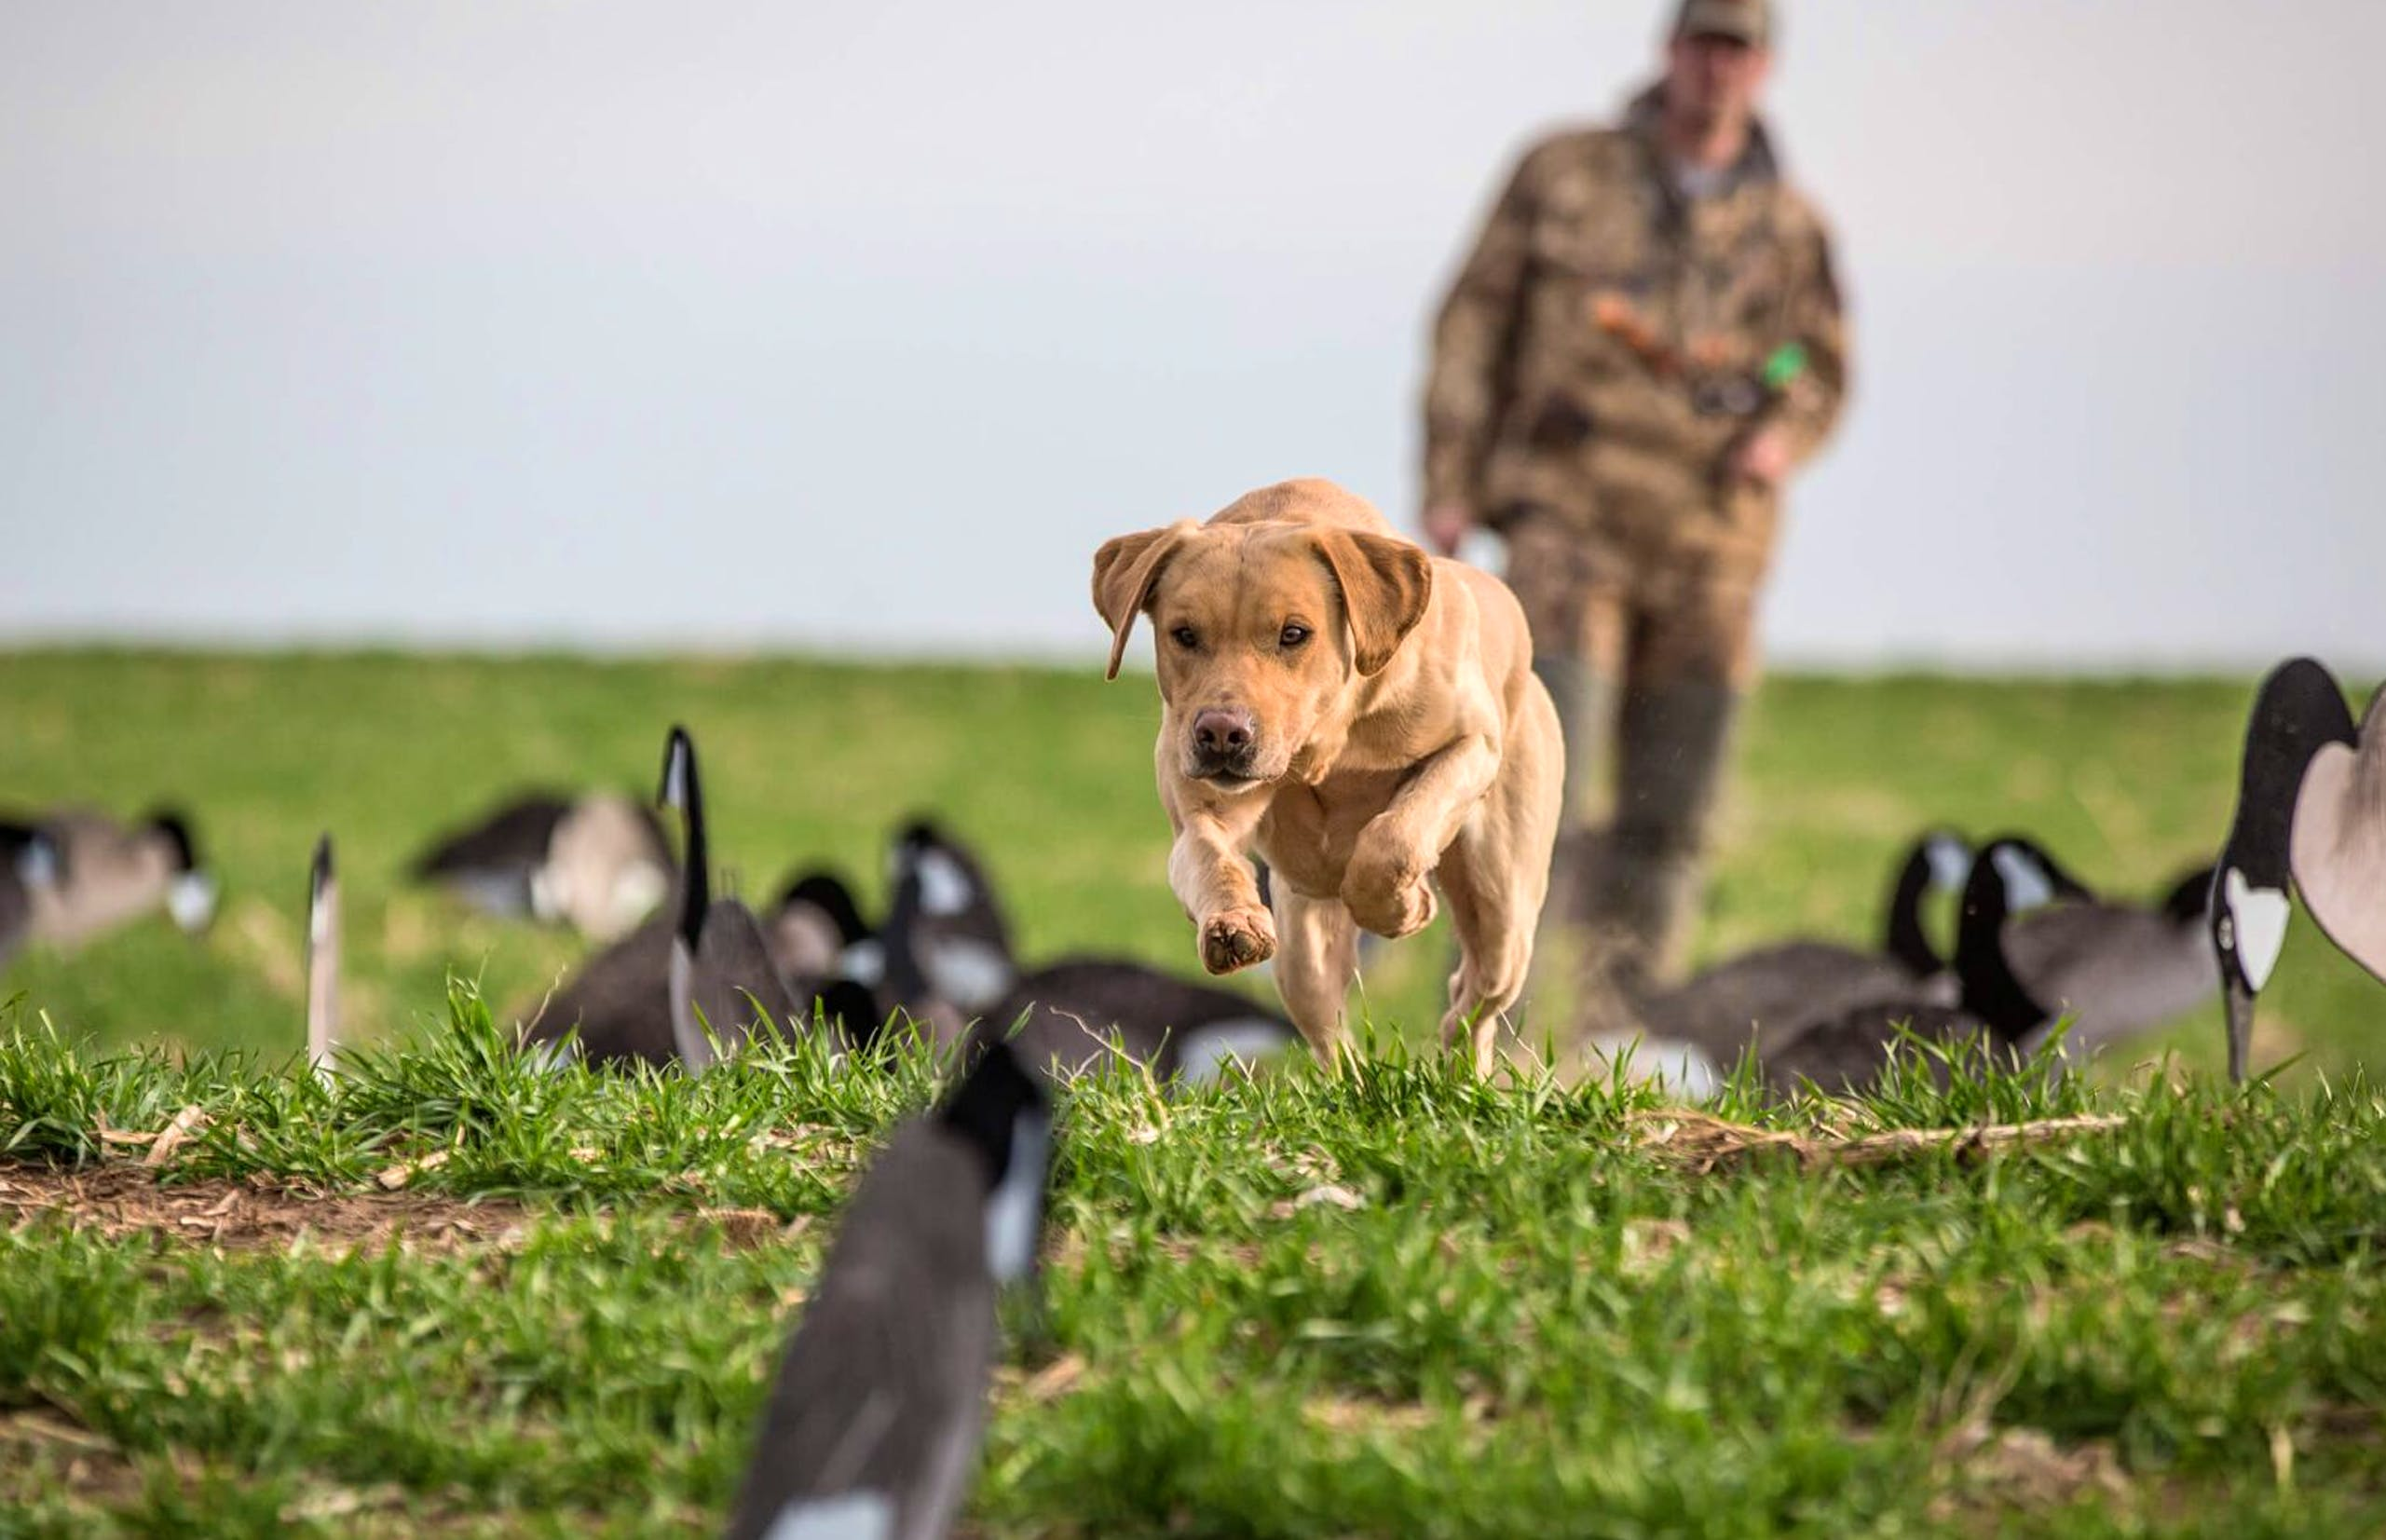 Yellow Lab running through field of decoys